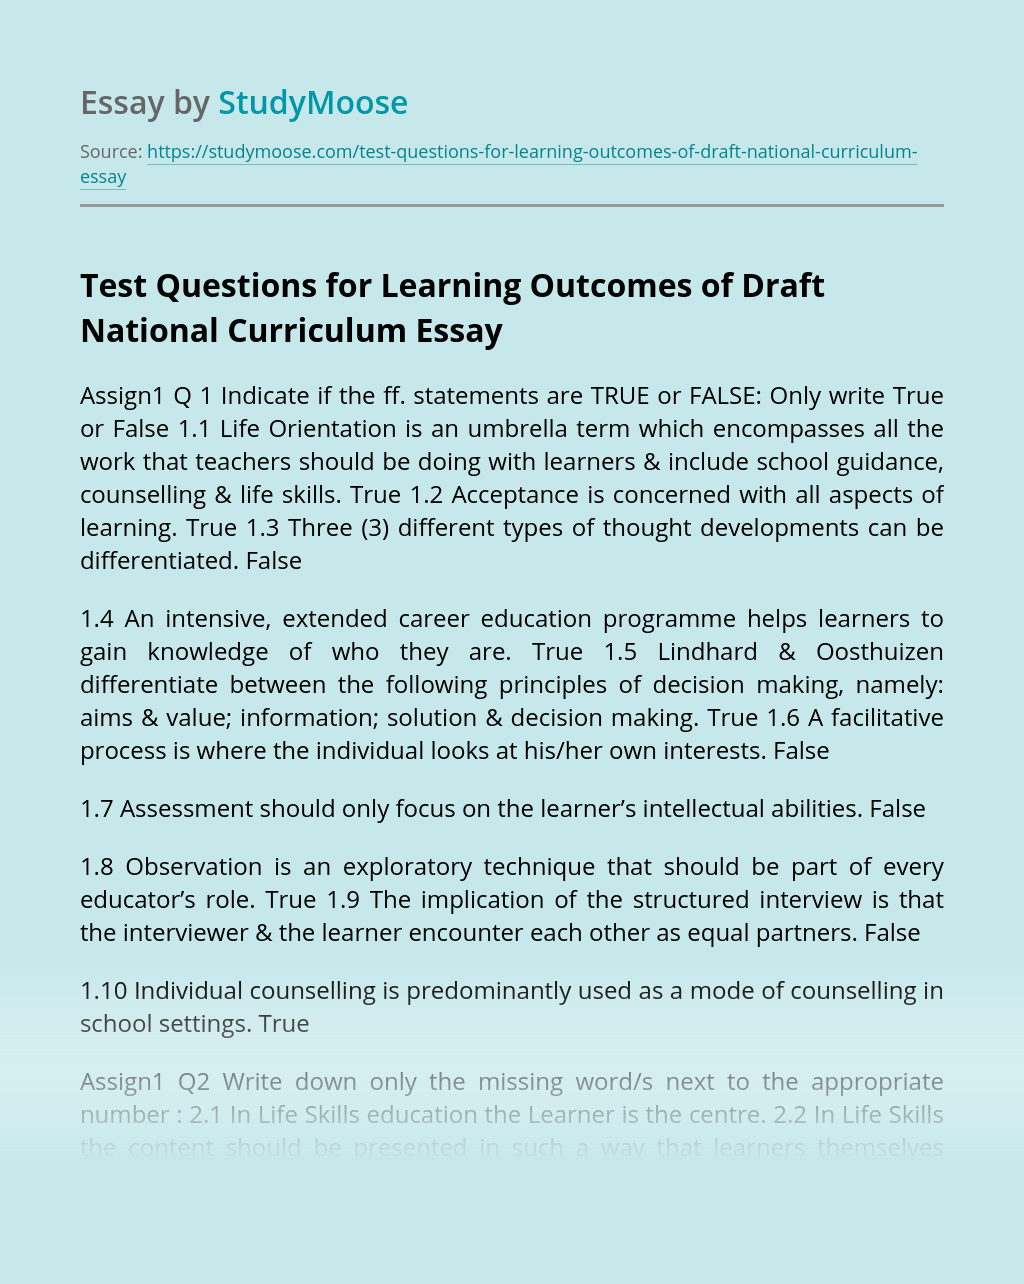 Test Questions for Learning Outcomes of Draft National Curriculum